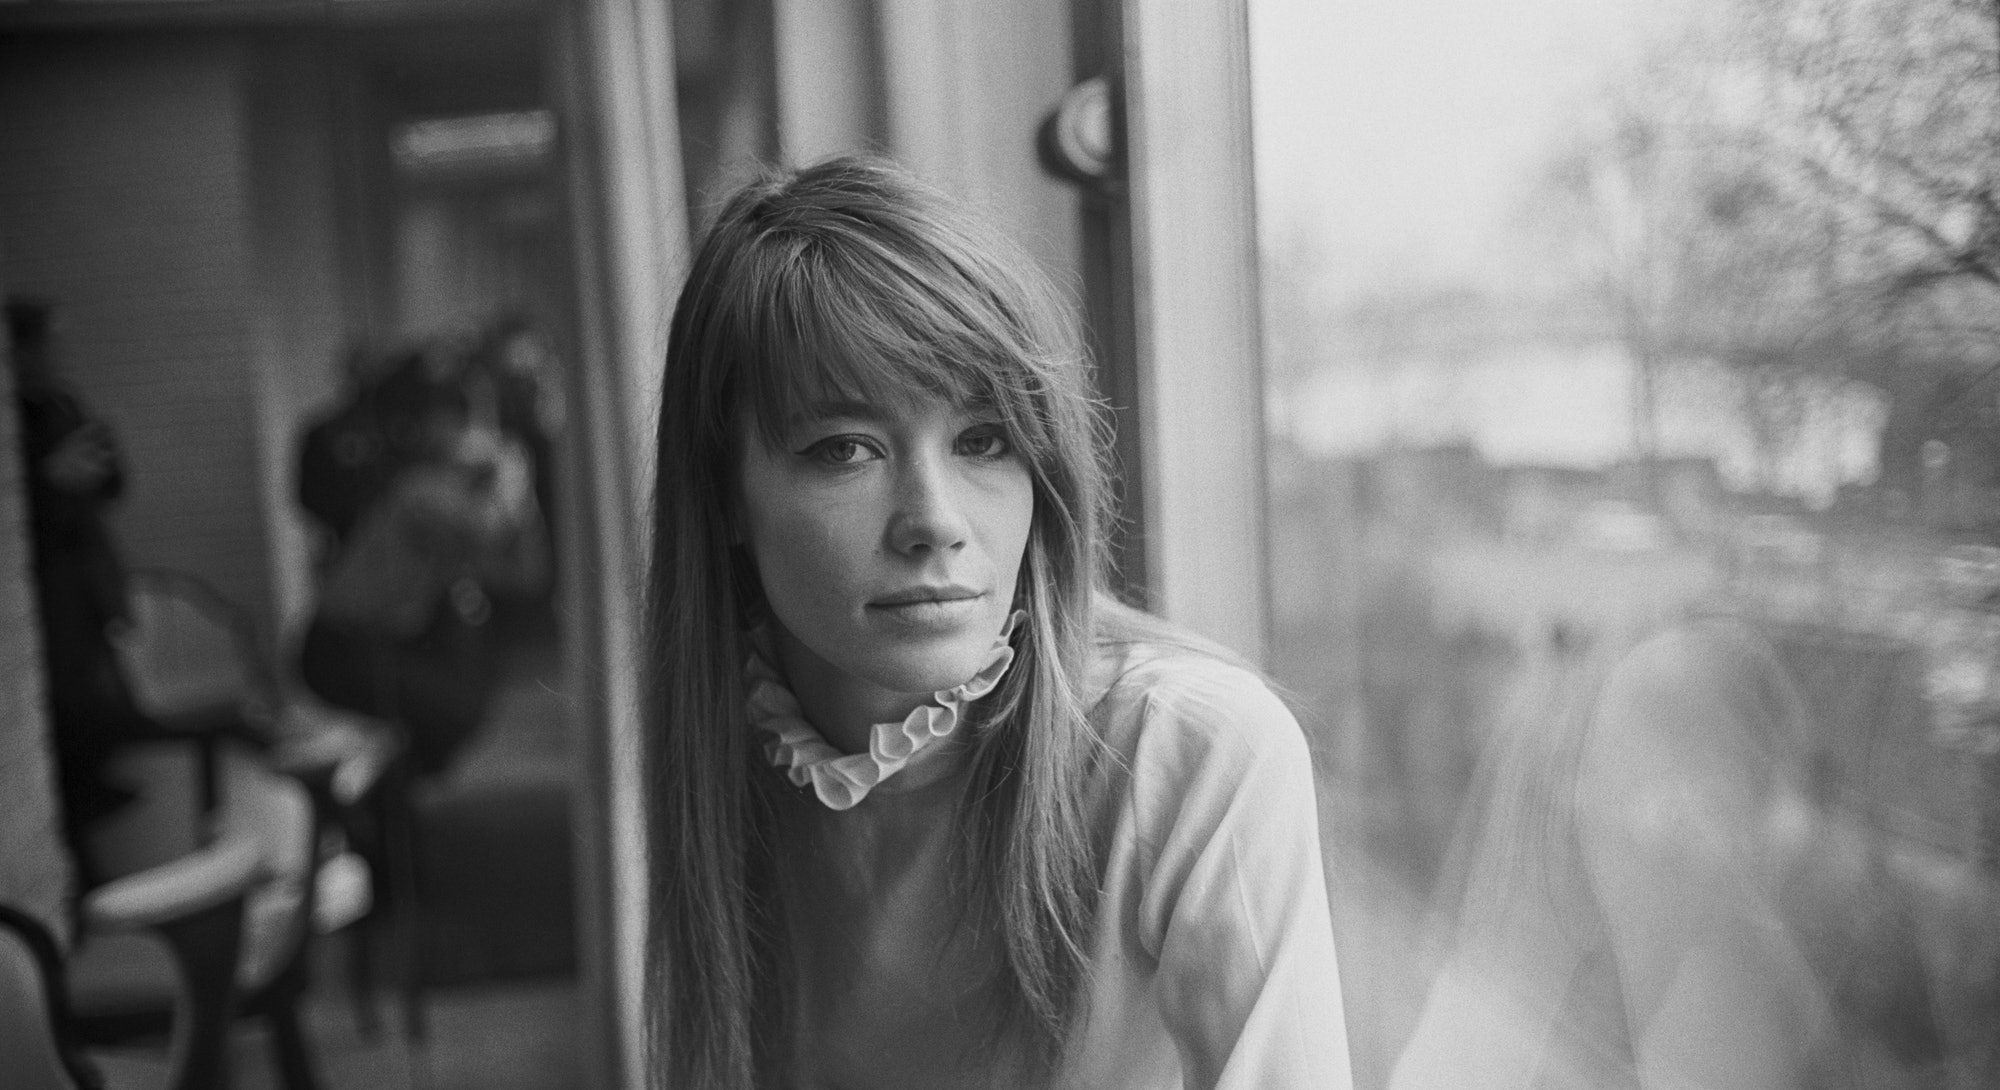 French singer-songwriter Francoise Hardy, UK, 9th February 1968. (Photo by Daily Express/Getty Images)